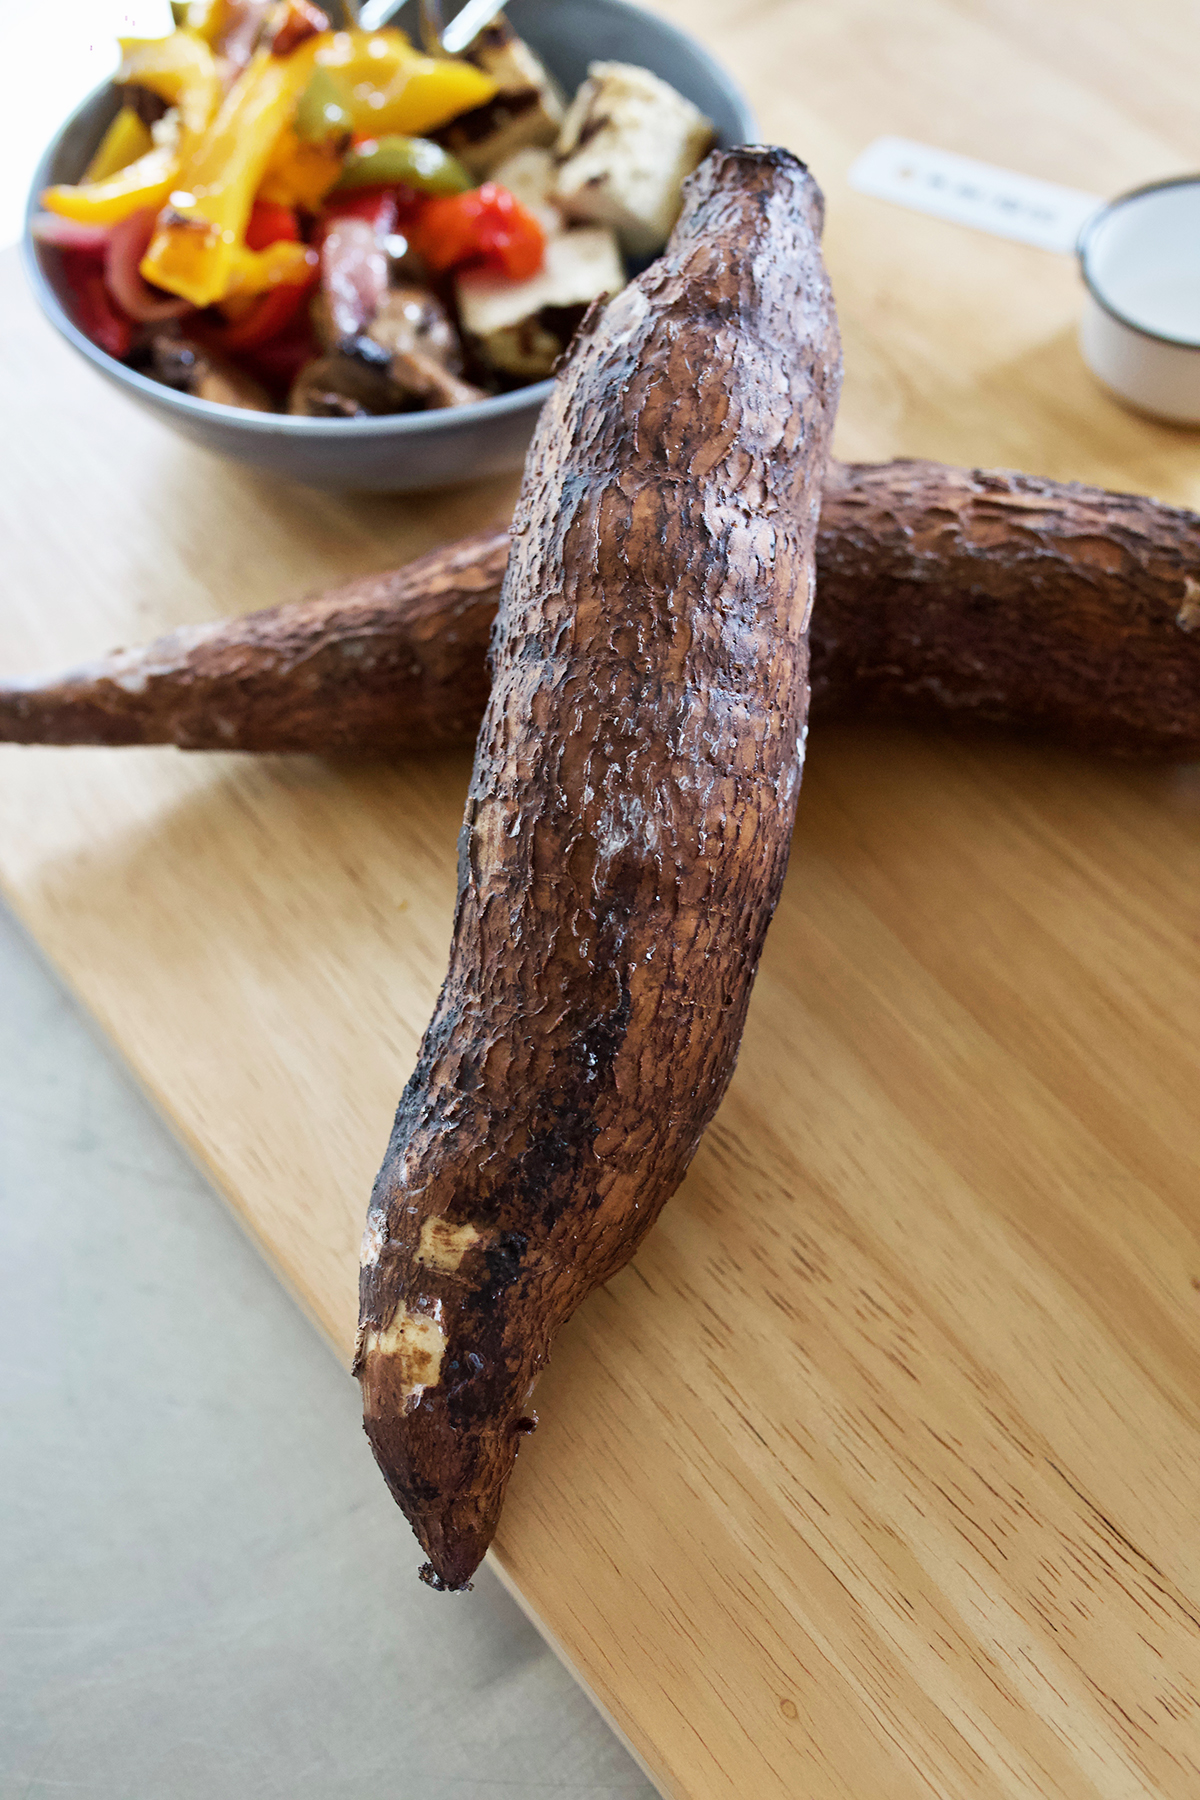 Health Benefits & Uses of Cassava Root | Herbal Academy | Cassava root is a versatile and nutritious root that's been used for food and wellness benefits for centuries. Learn how to use cassava root in this post!